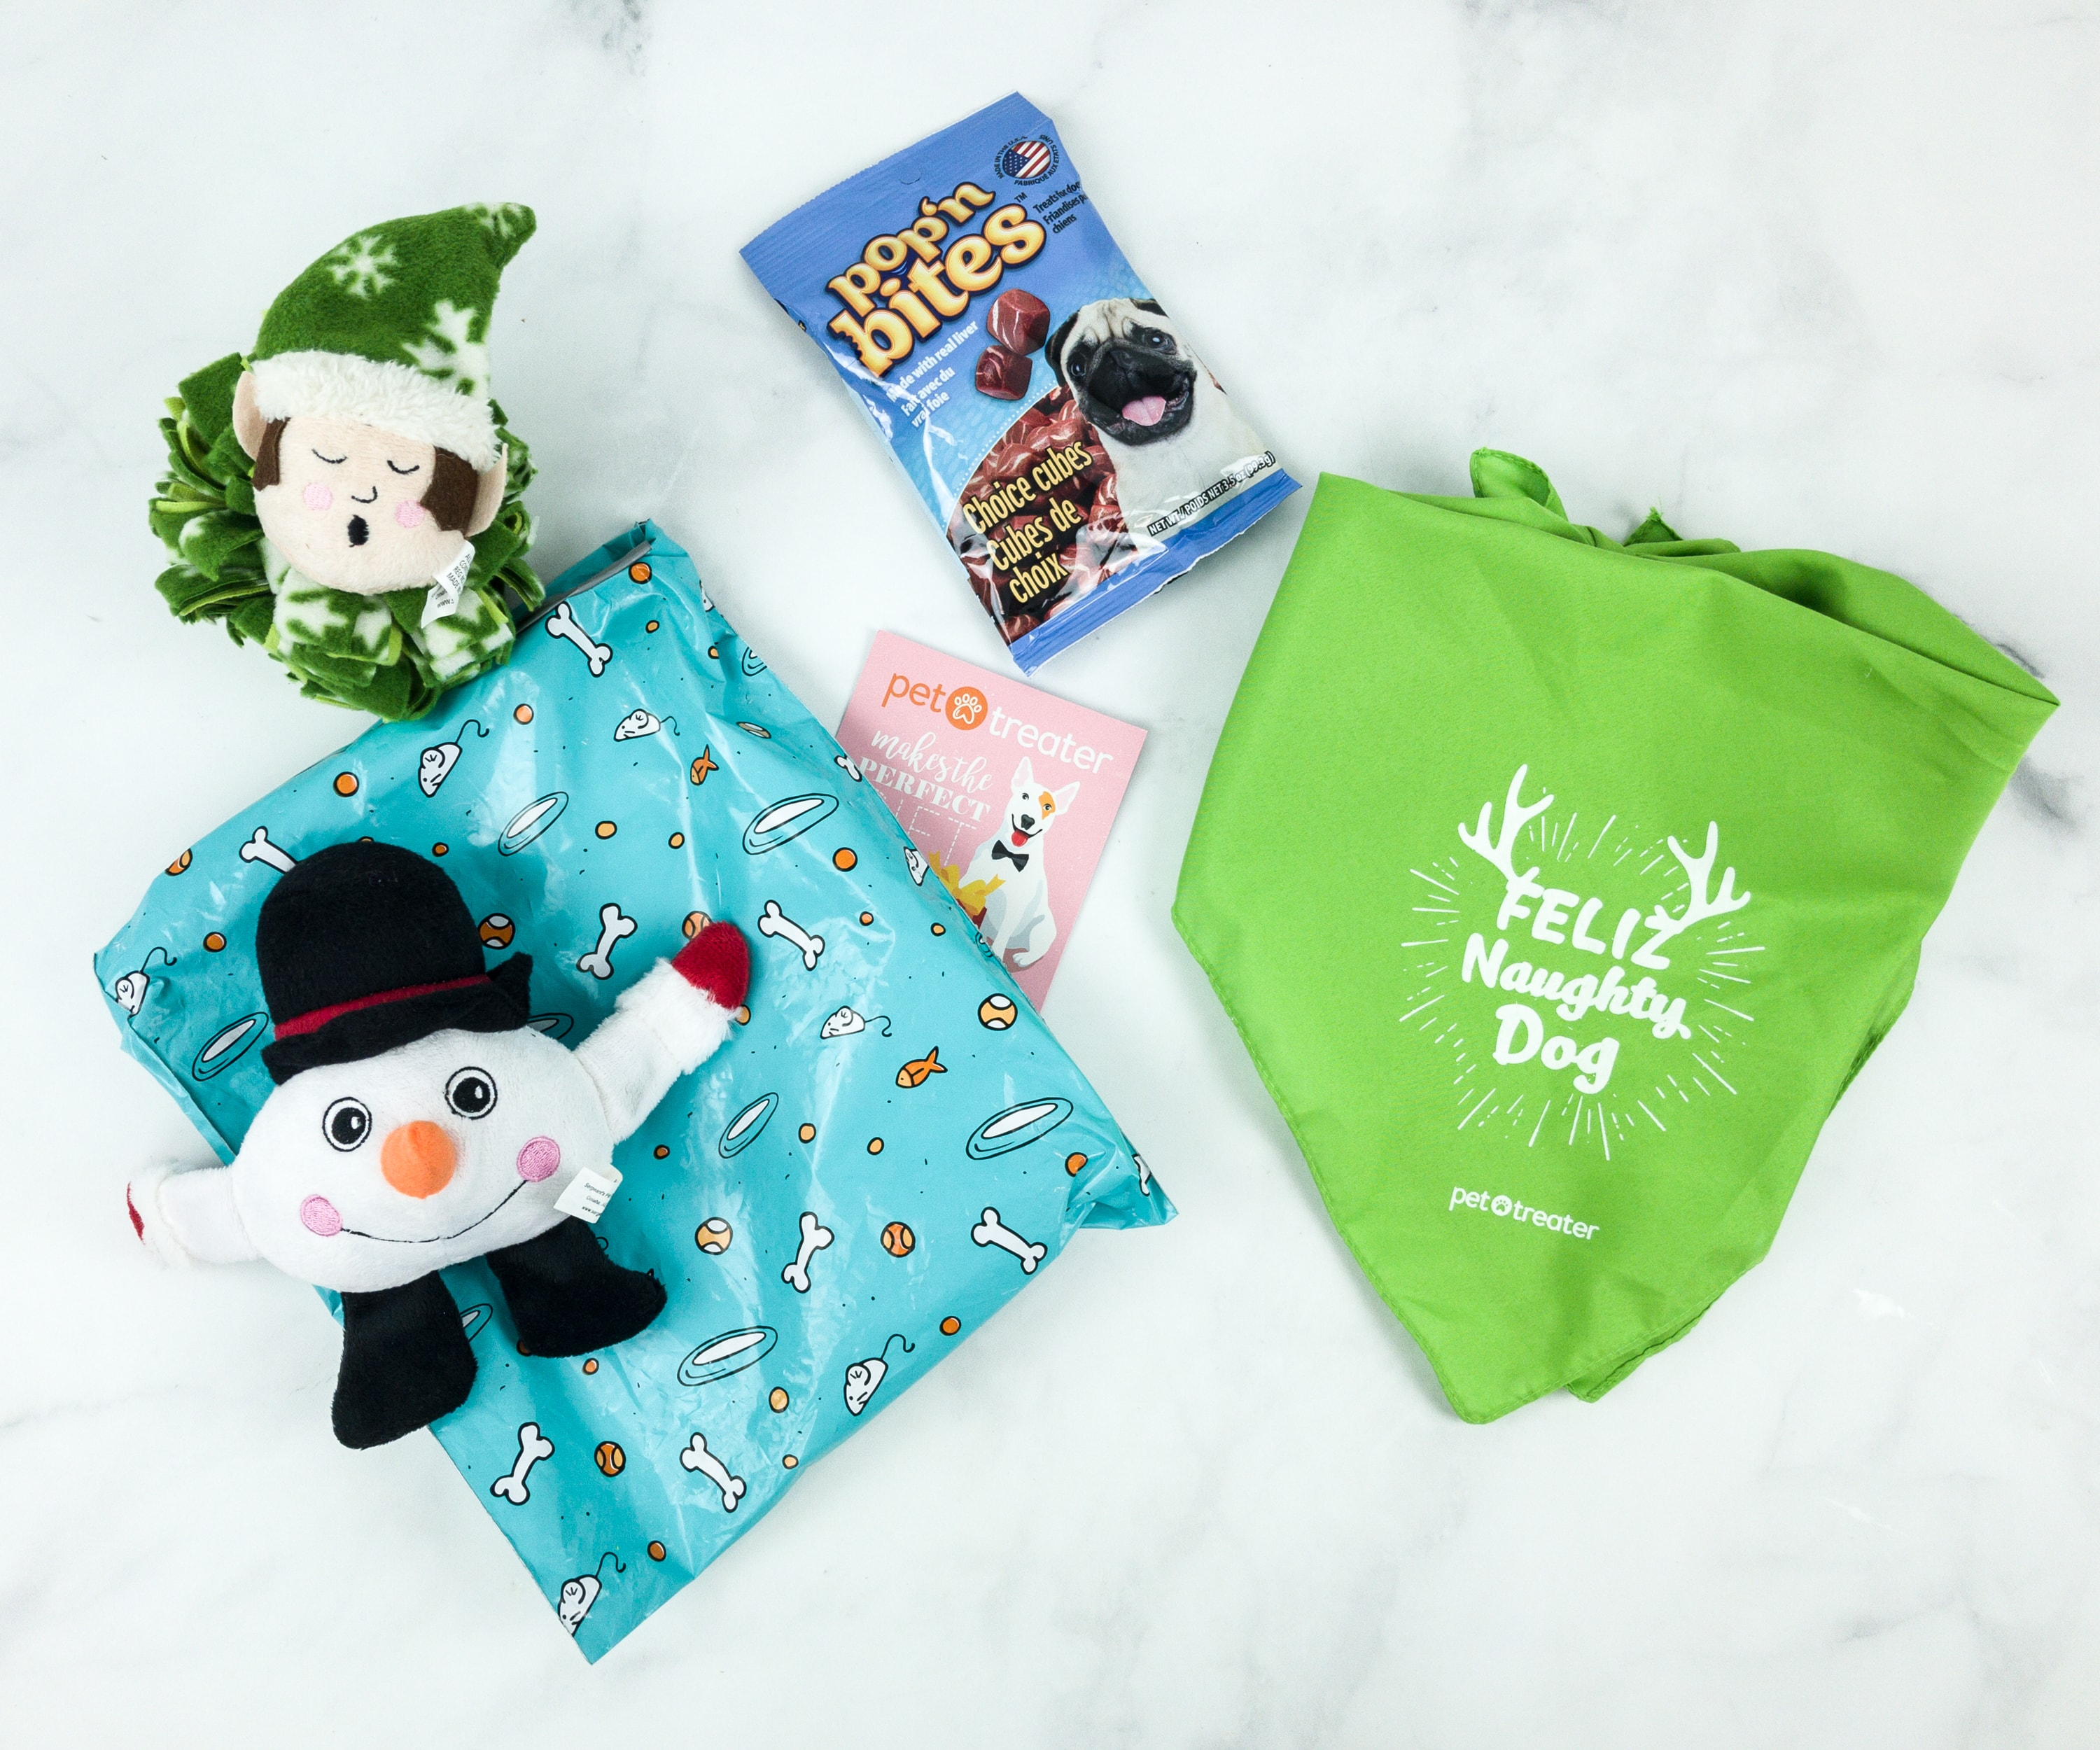 Pet Treater Dog Pack December 2018 Subscription Box Review + Coupon!